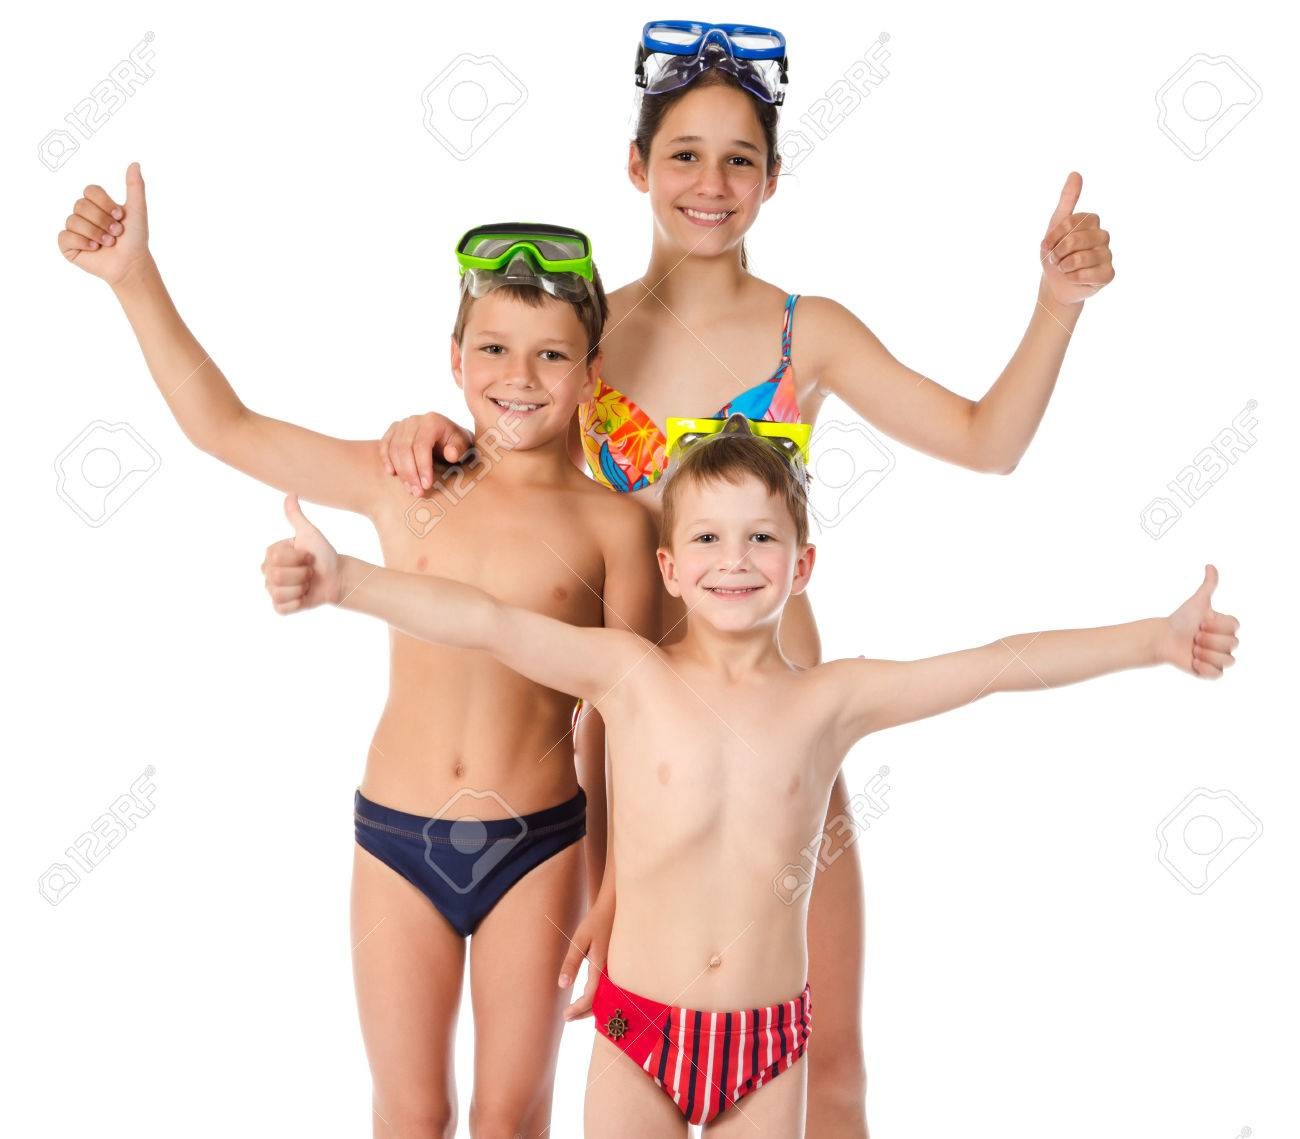 4f10809d9a407 Family With Three Happy Kids In Swimsuit Standing Together